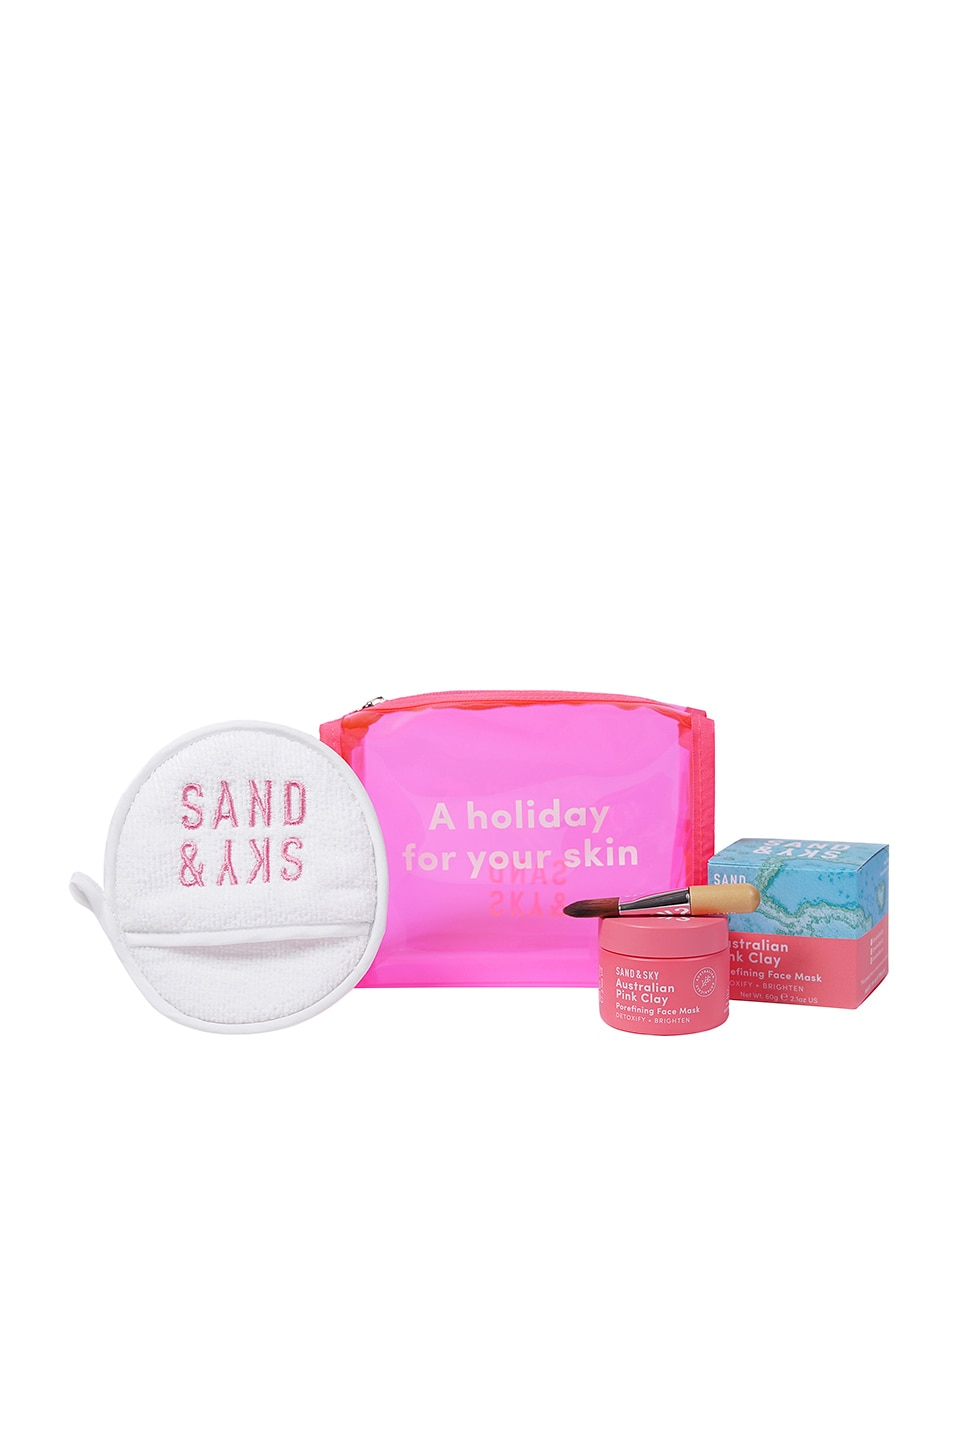 SAND & SKY Porefining Kit in Beauty: Na